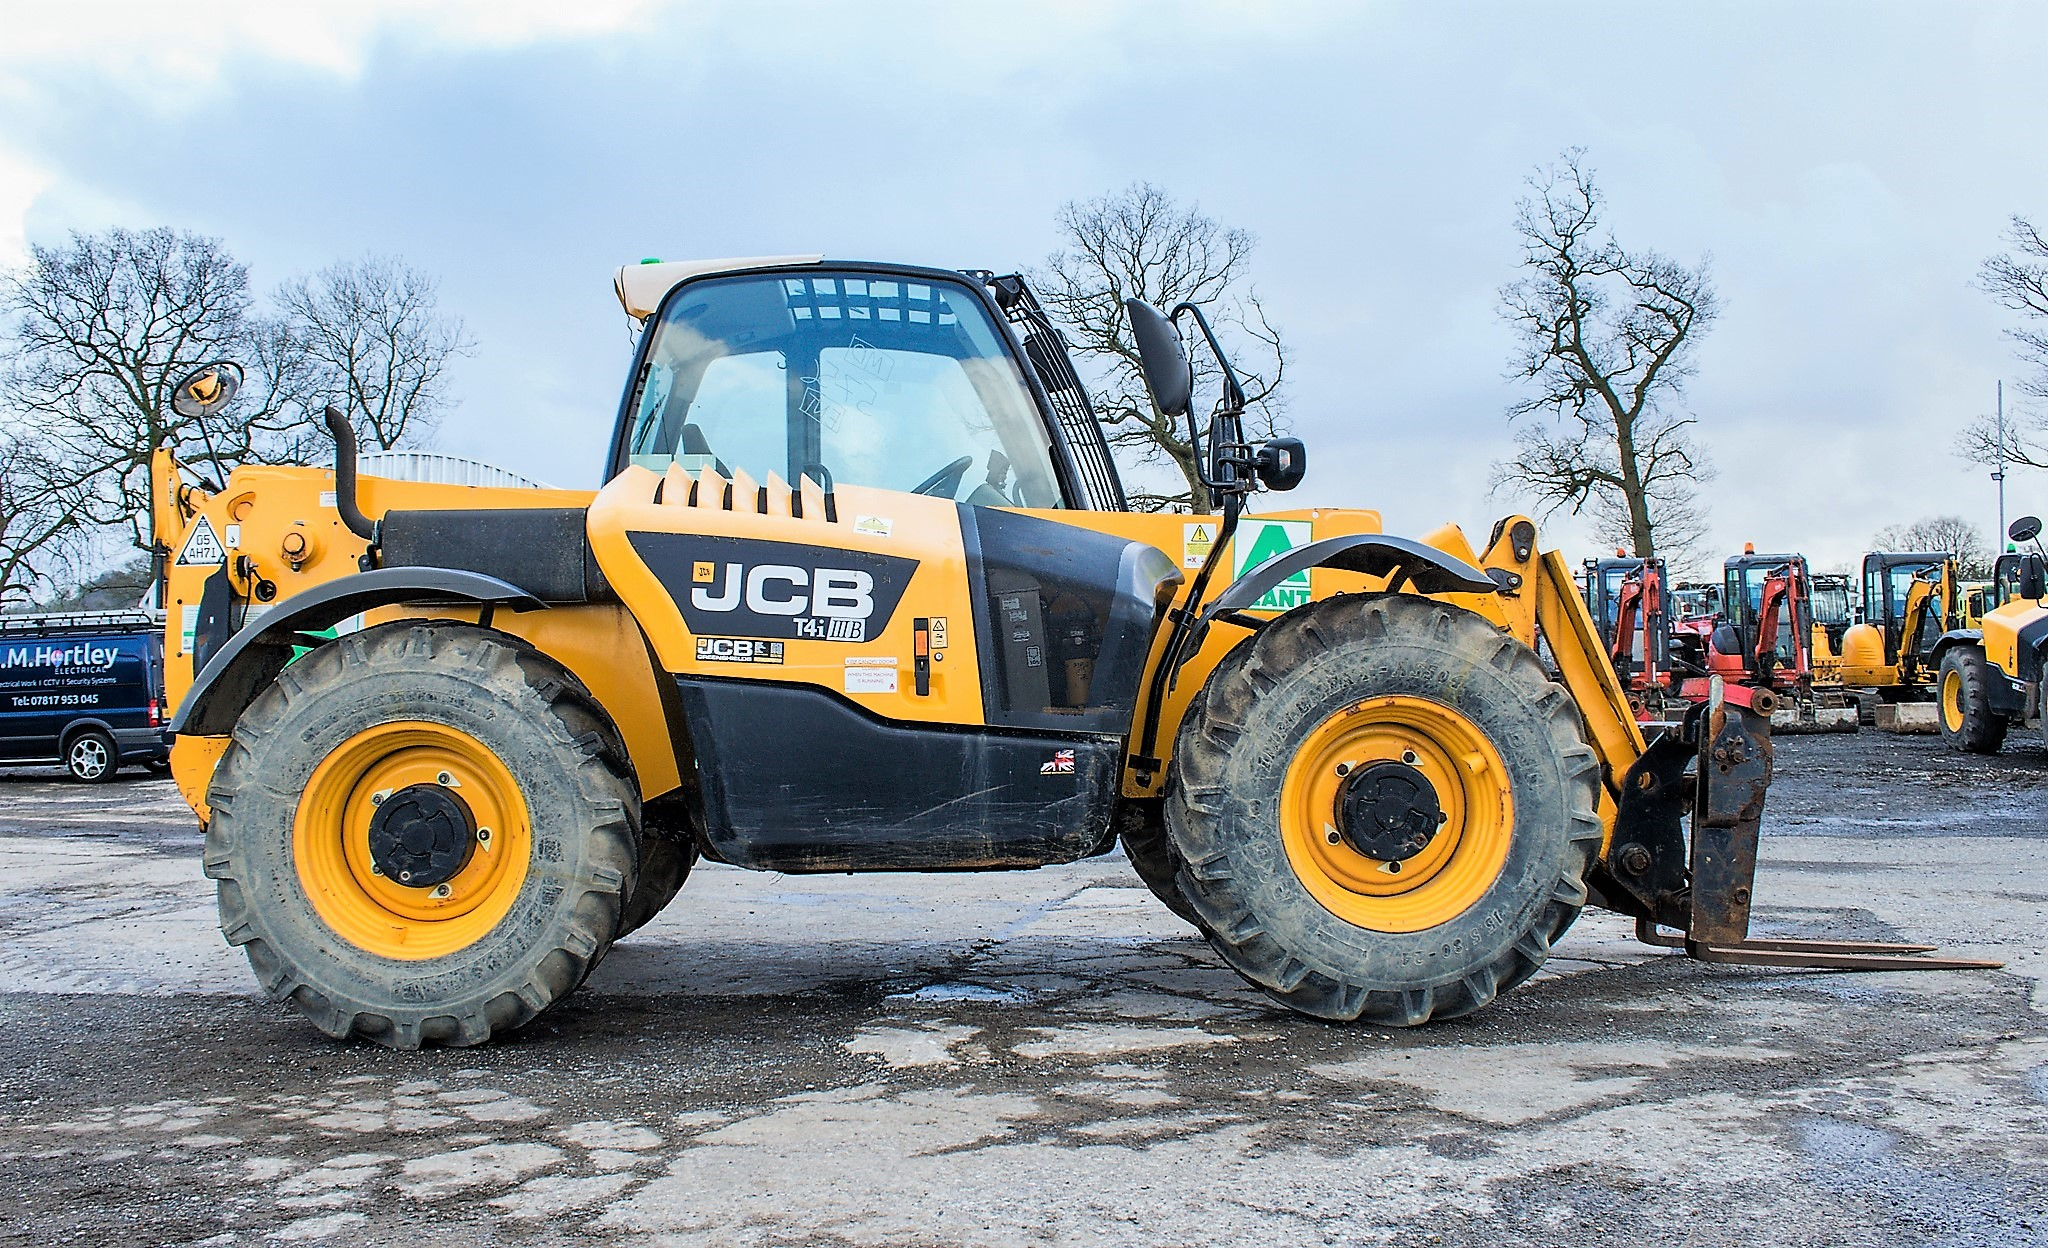 JCB 531-70 7 metre telescopic handler Year: 2013 S/N: 2176575 Reg No: MX13 PHY Recorded Hours: - Image 8 of 19